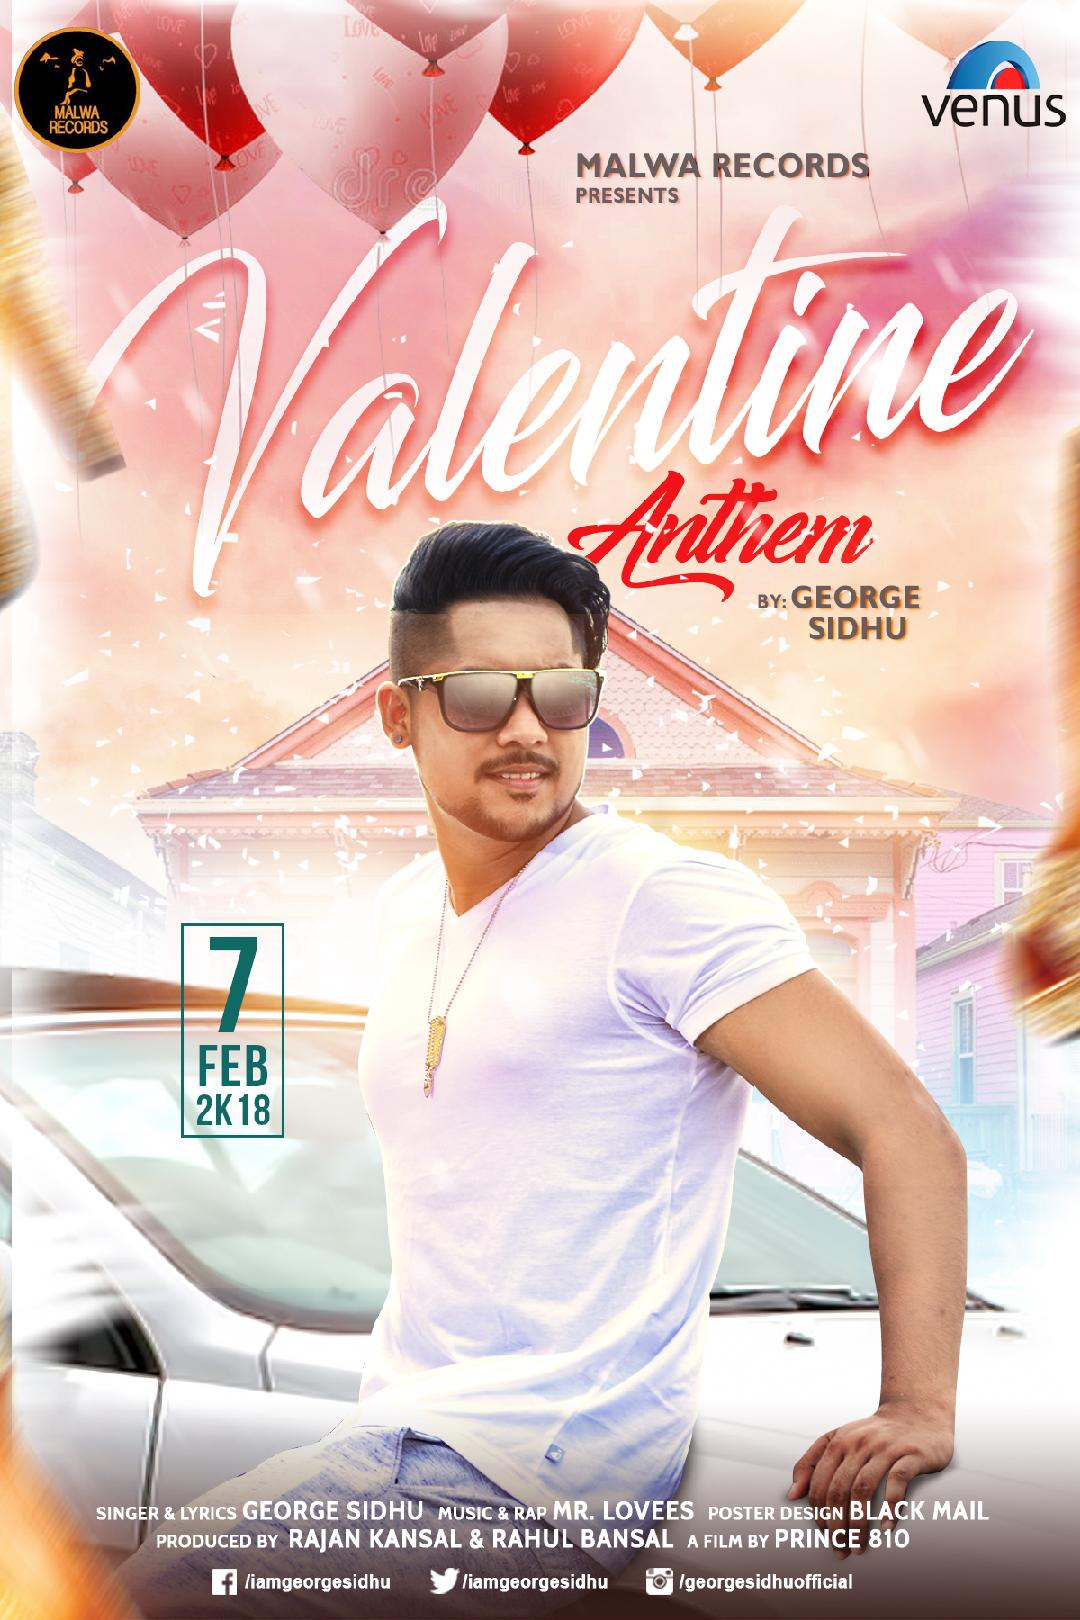 free download Valentine Anthem George Sidhu full mp3 songs